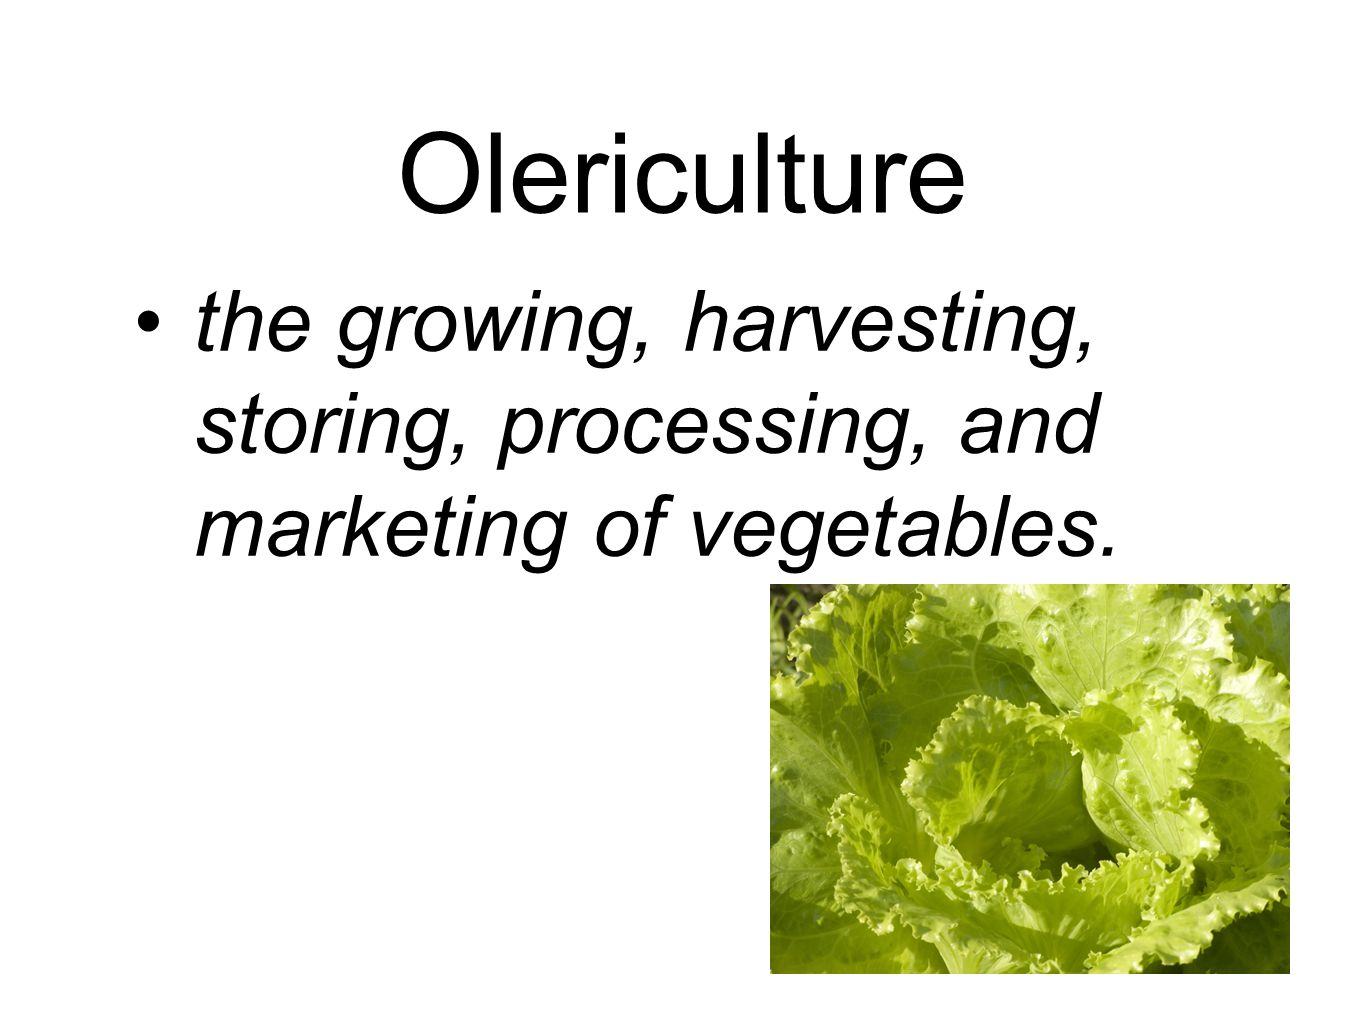 Olericulture the growing, harvesting, storing, processing, and marketing of vegetables.